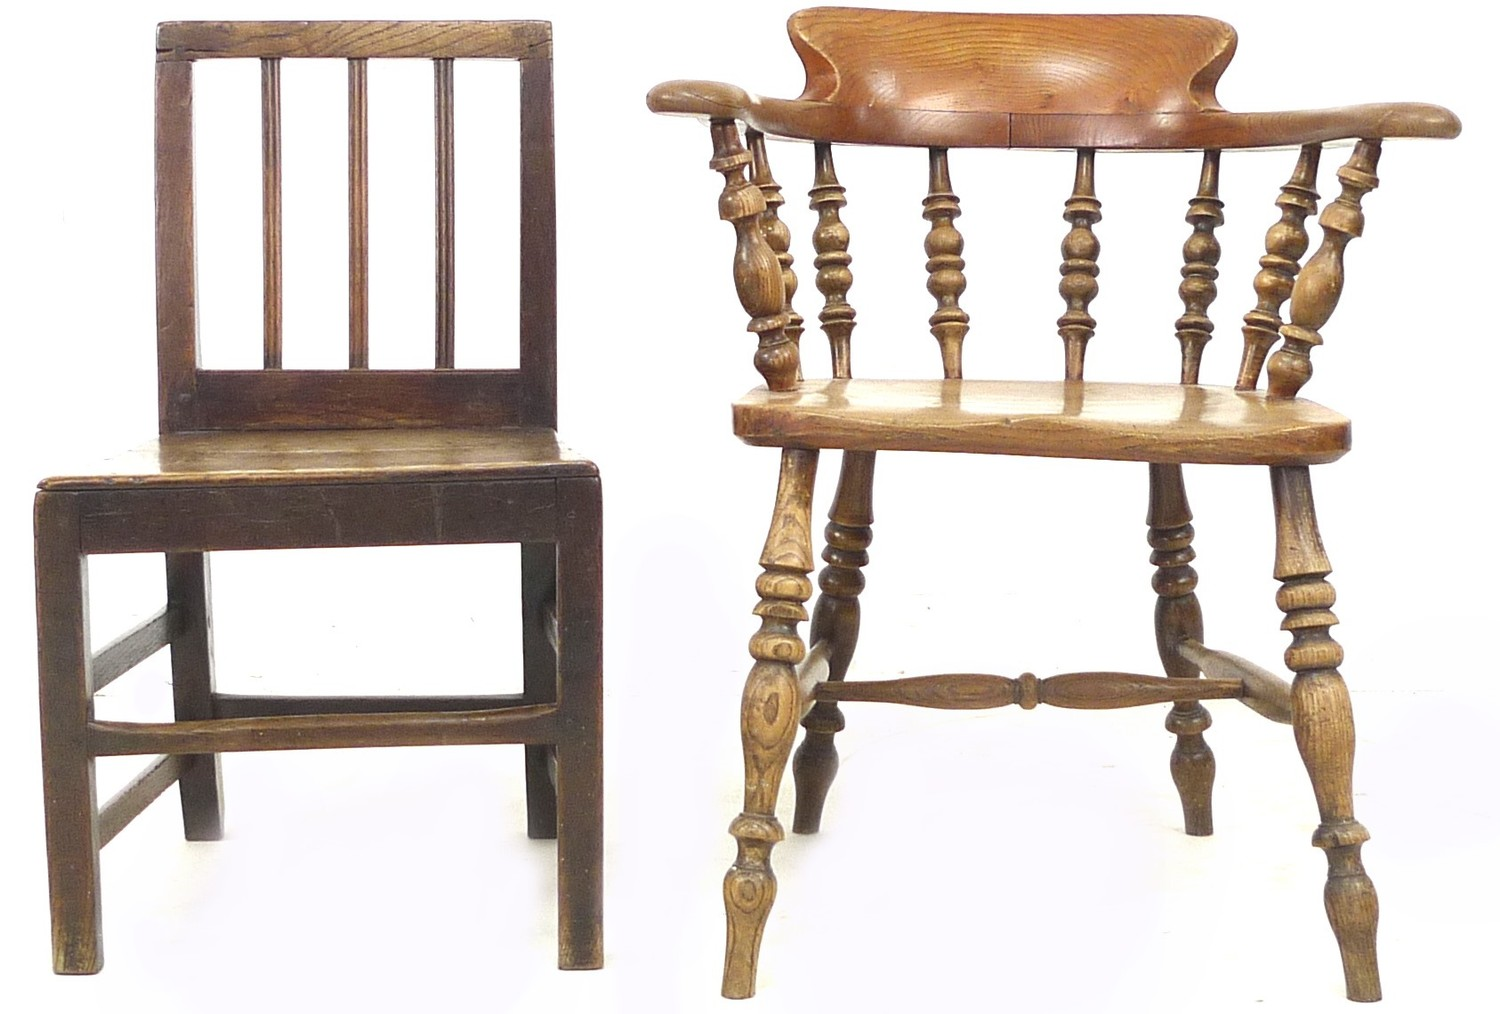 A Scandinavian oak nursery chair, with three rail back, 44 by 48 by 78cm high, together with a - Image 4 of 4